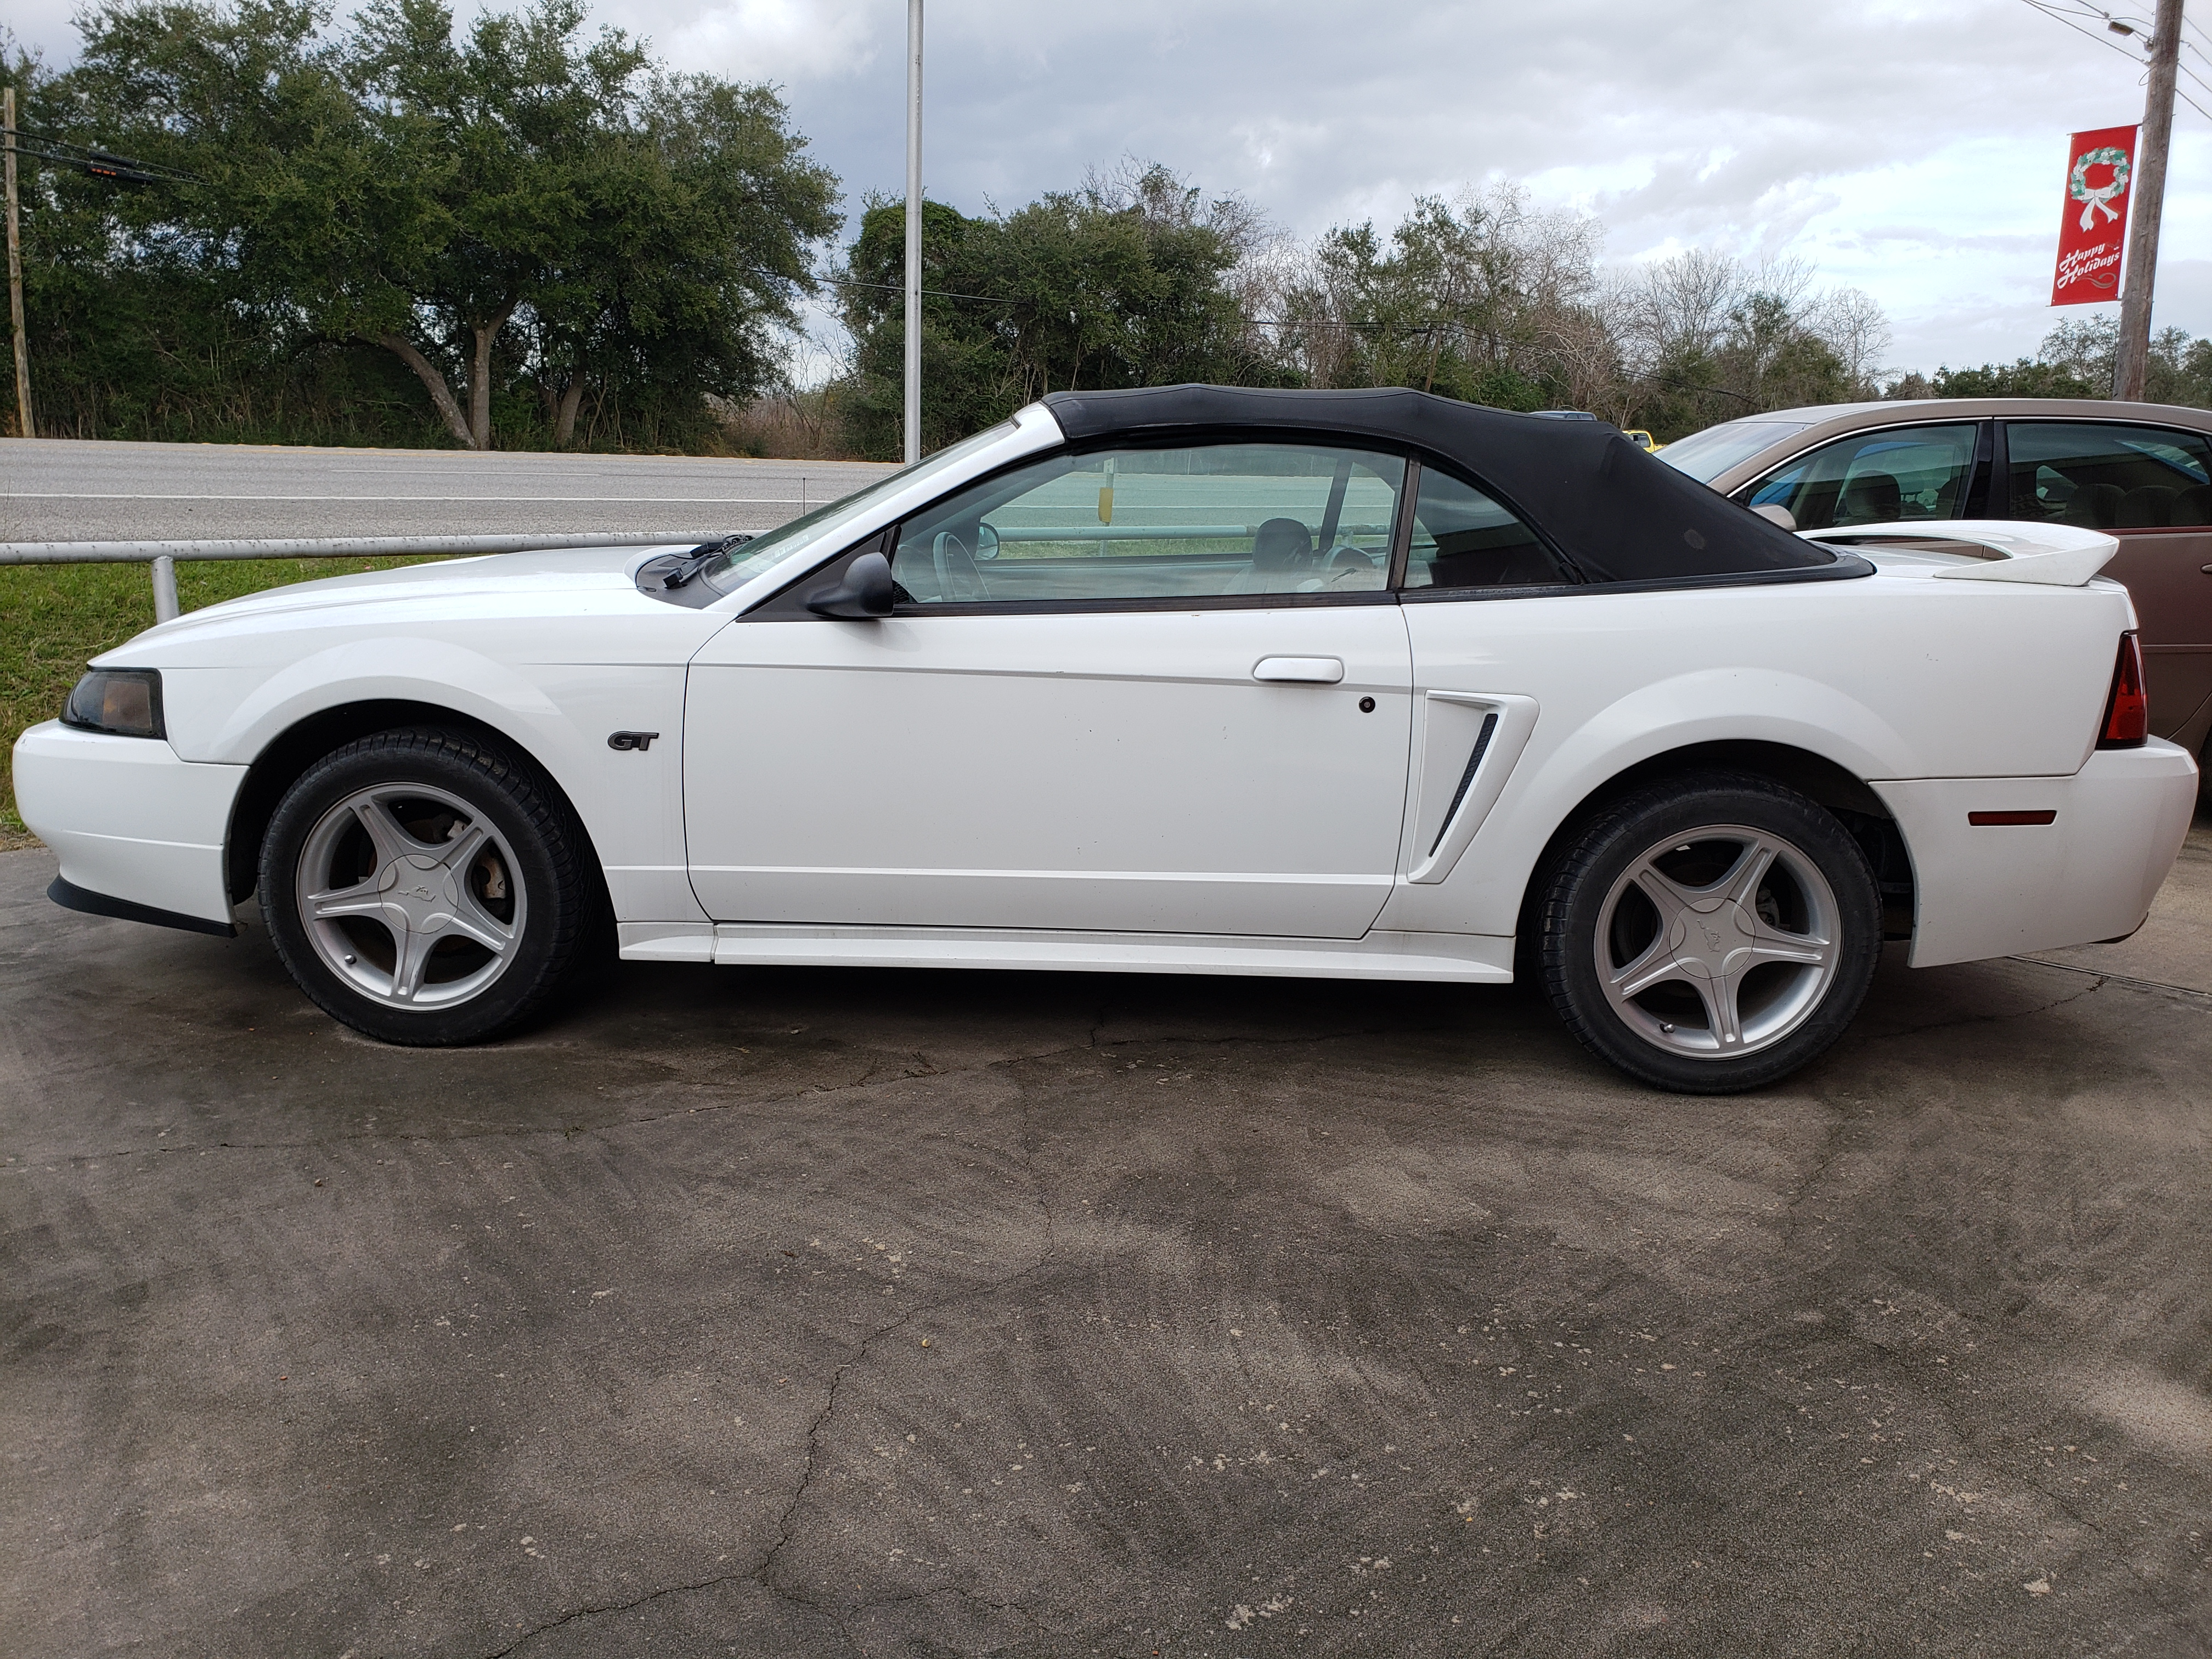 Stk T180245 2000 Ford Mustang White 191298 Miles